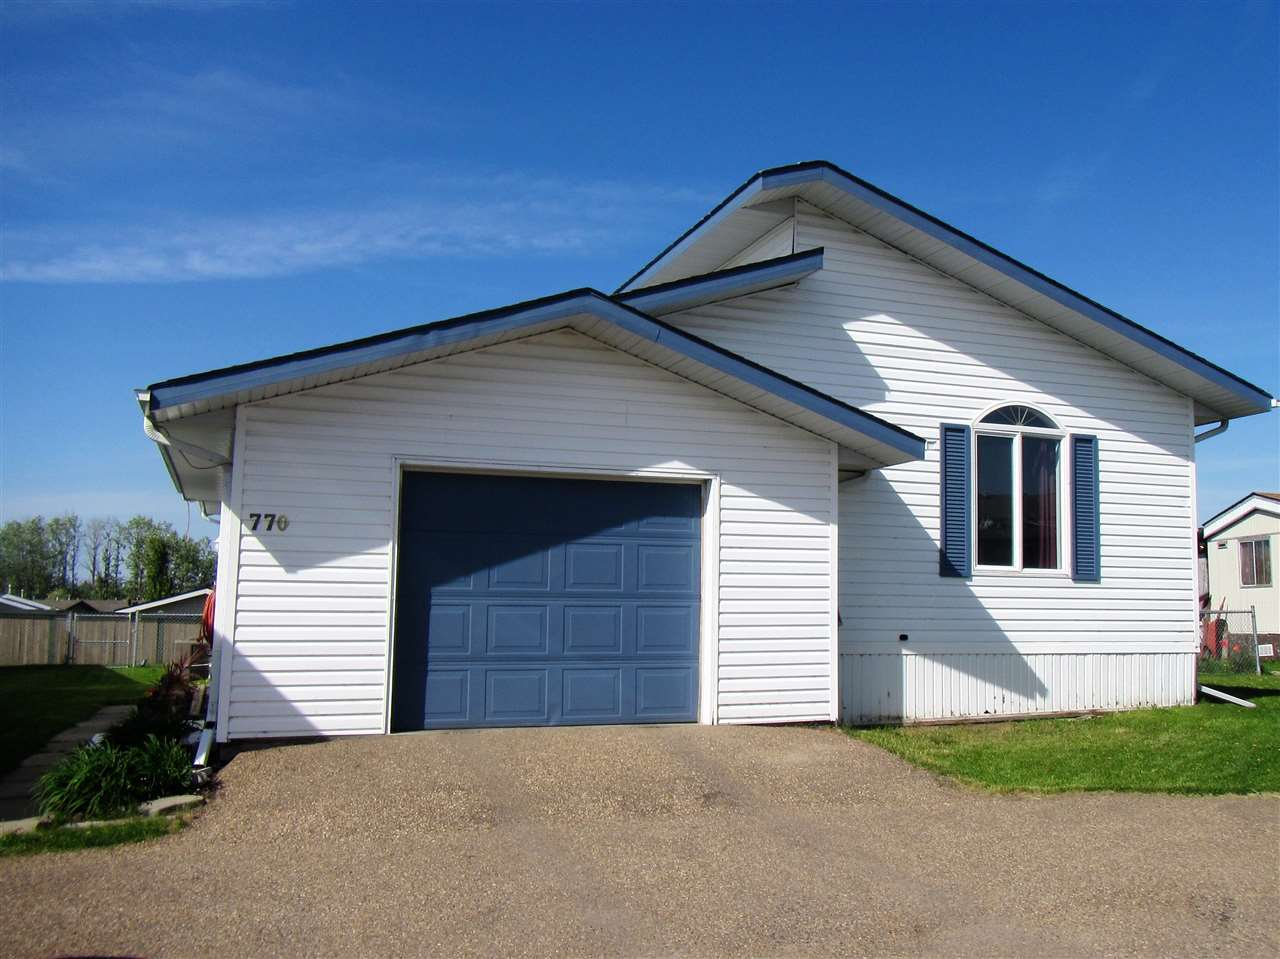 Main Photo: 770 53222 Range Rd 272: Rural Parkland County Mobile for sale : MLS® # E4066862